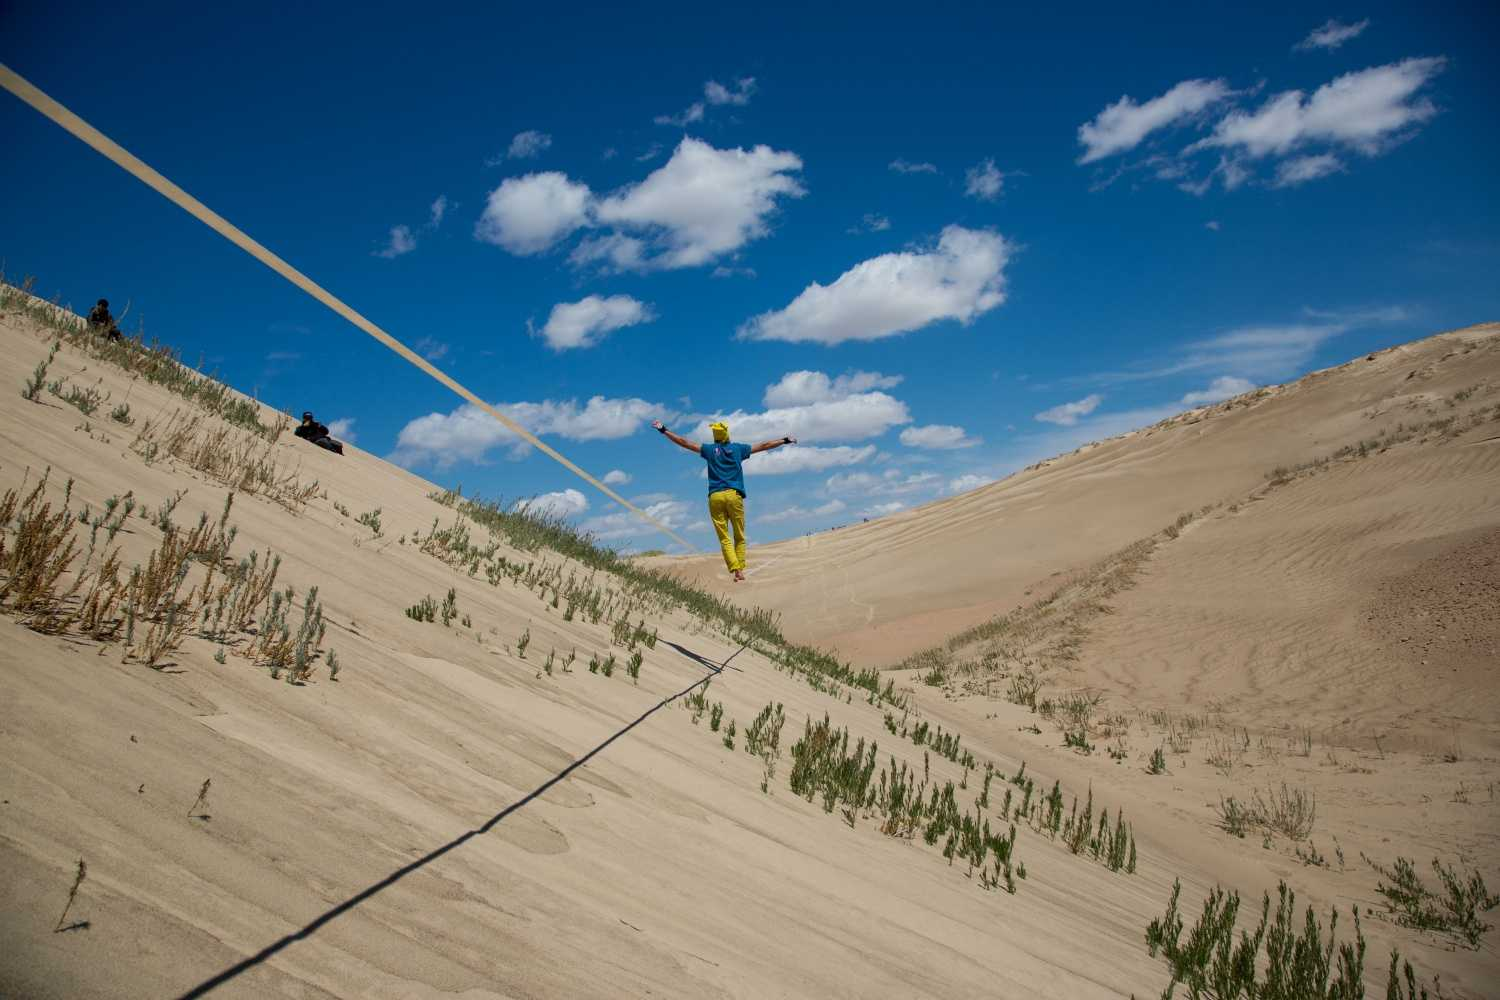 Wueste_China_Slackline-World-record (13).jpg